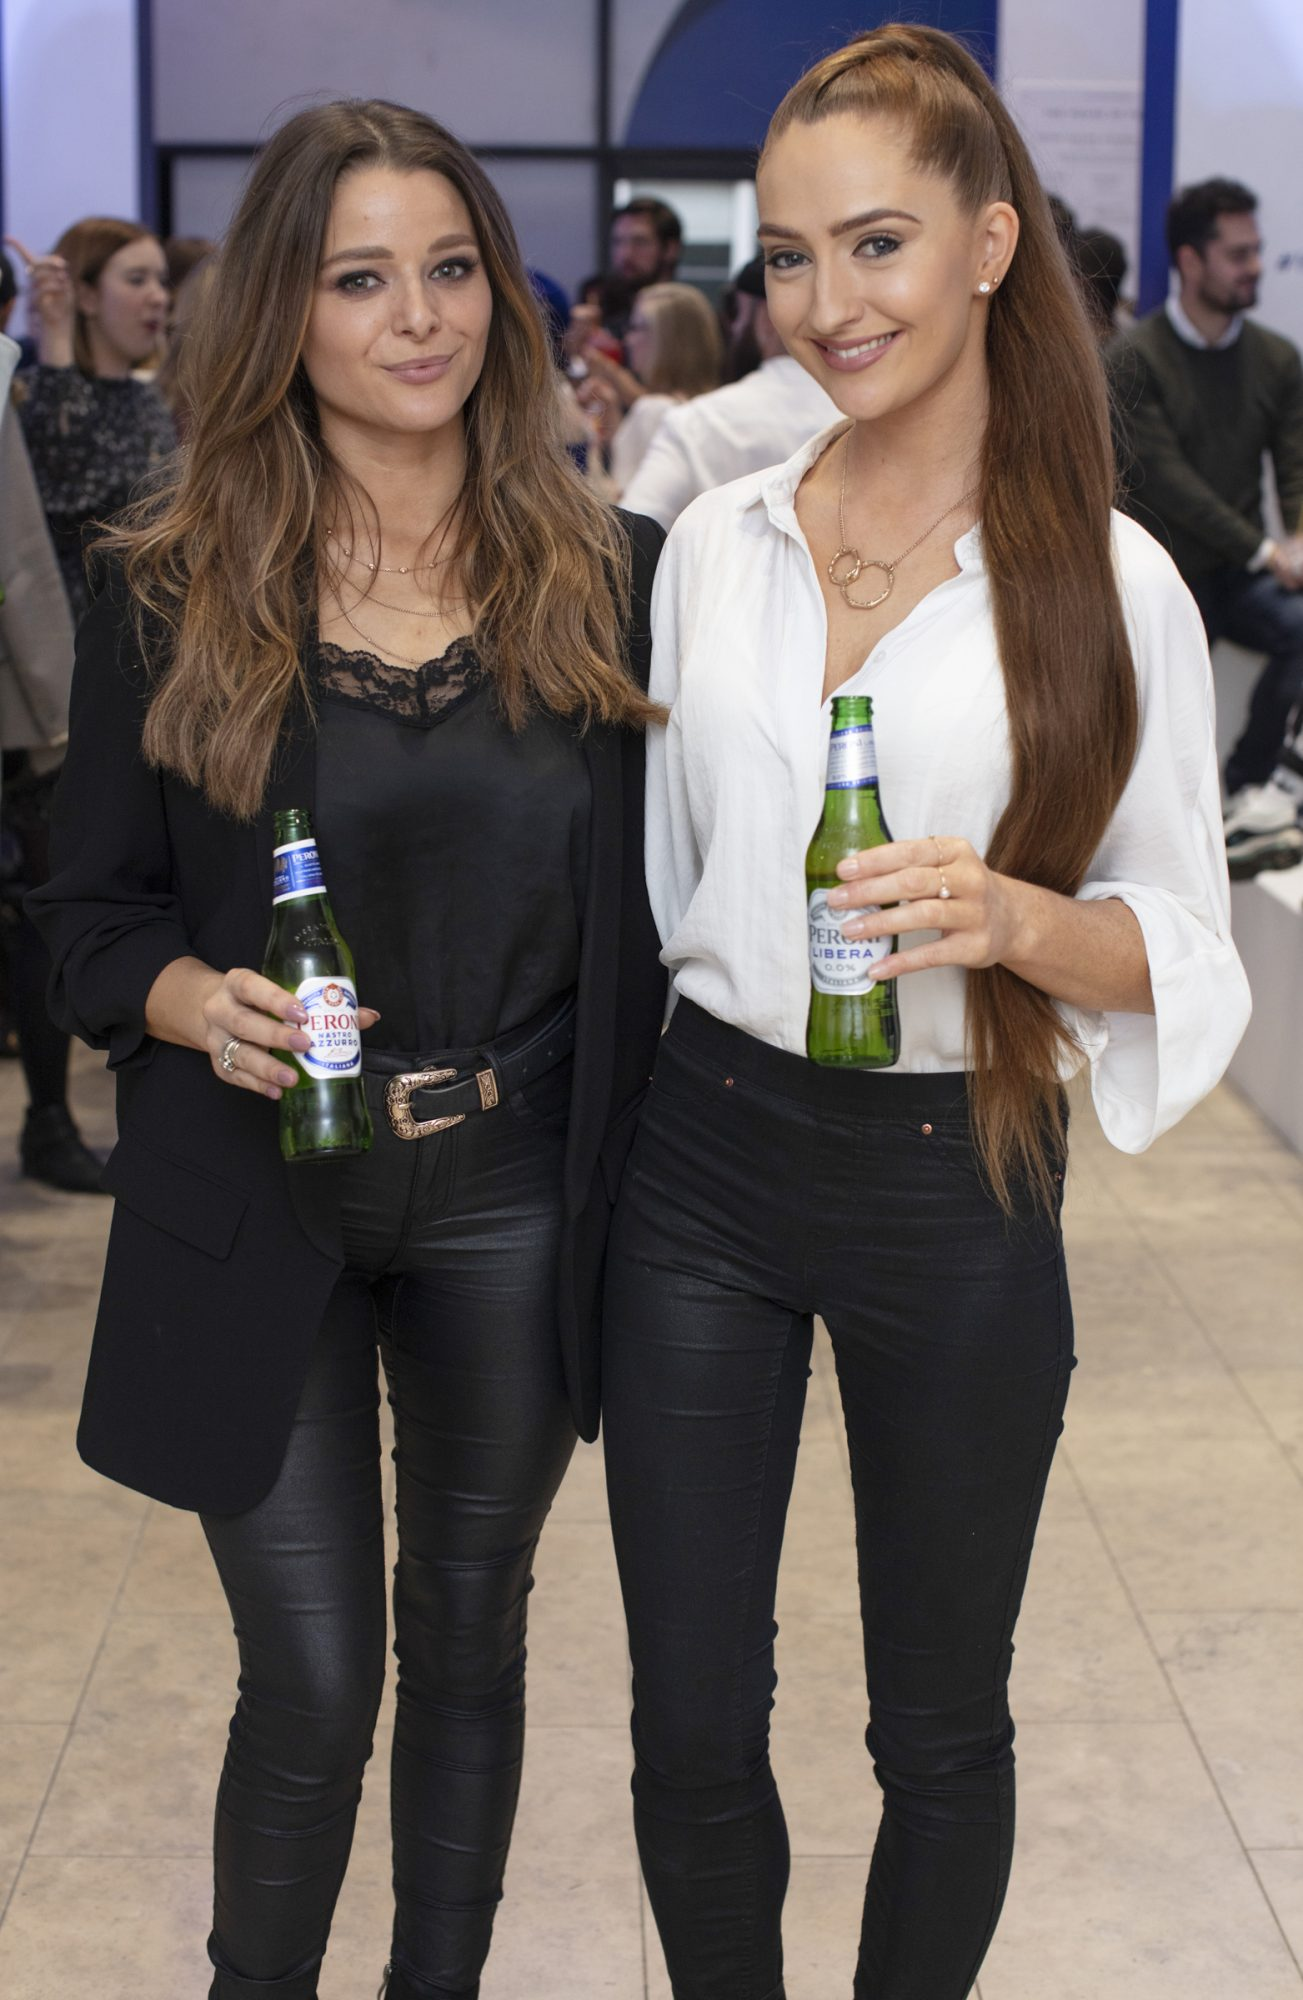 Rebekah Hitchmough & Yve Byrne pictured at the launch of The House of Peroni, which is open at the RHA in Dublin until Sunday, 1st September 2019. This year's residency sees the RHA transformed into a stylish Peroni inspired experience, filled with food, drink and design. www.thehouseofperoni.com Photo: Anthony Woods.